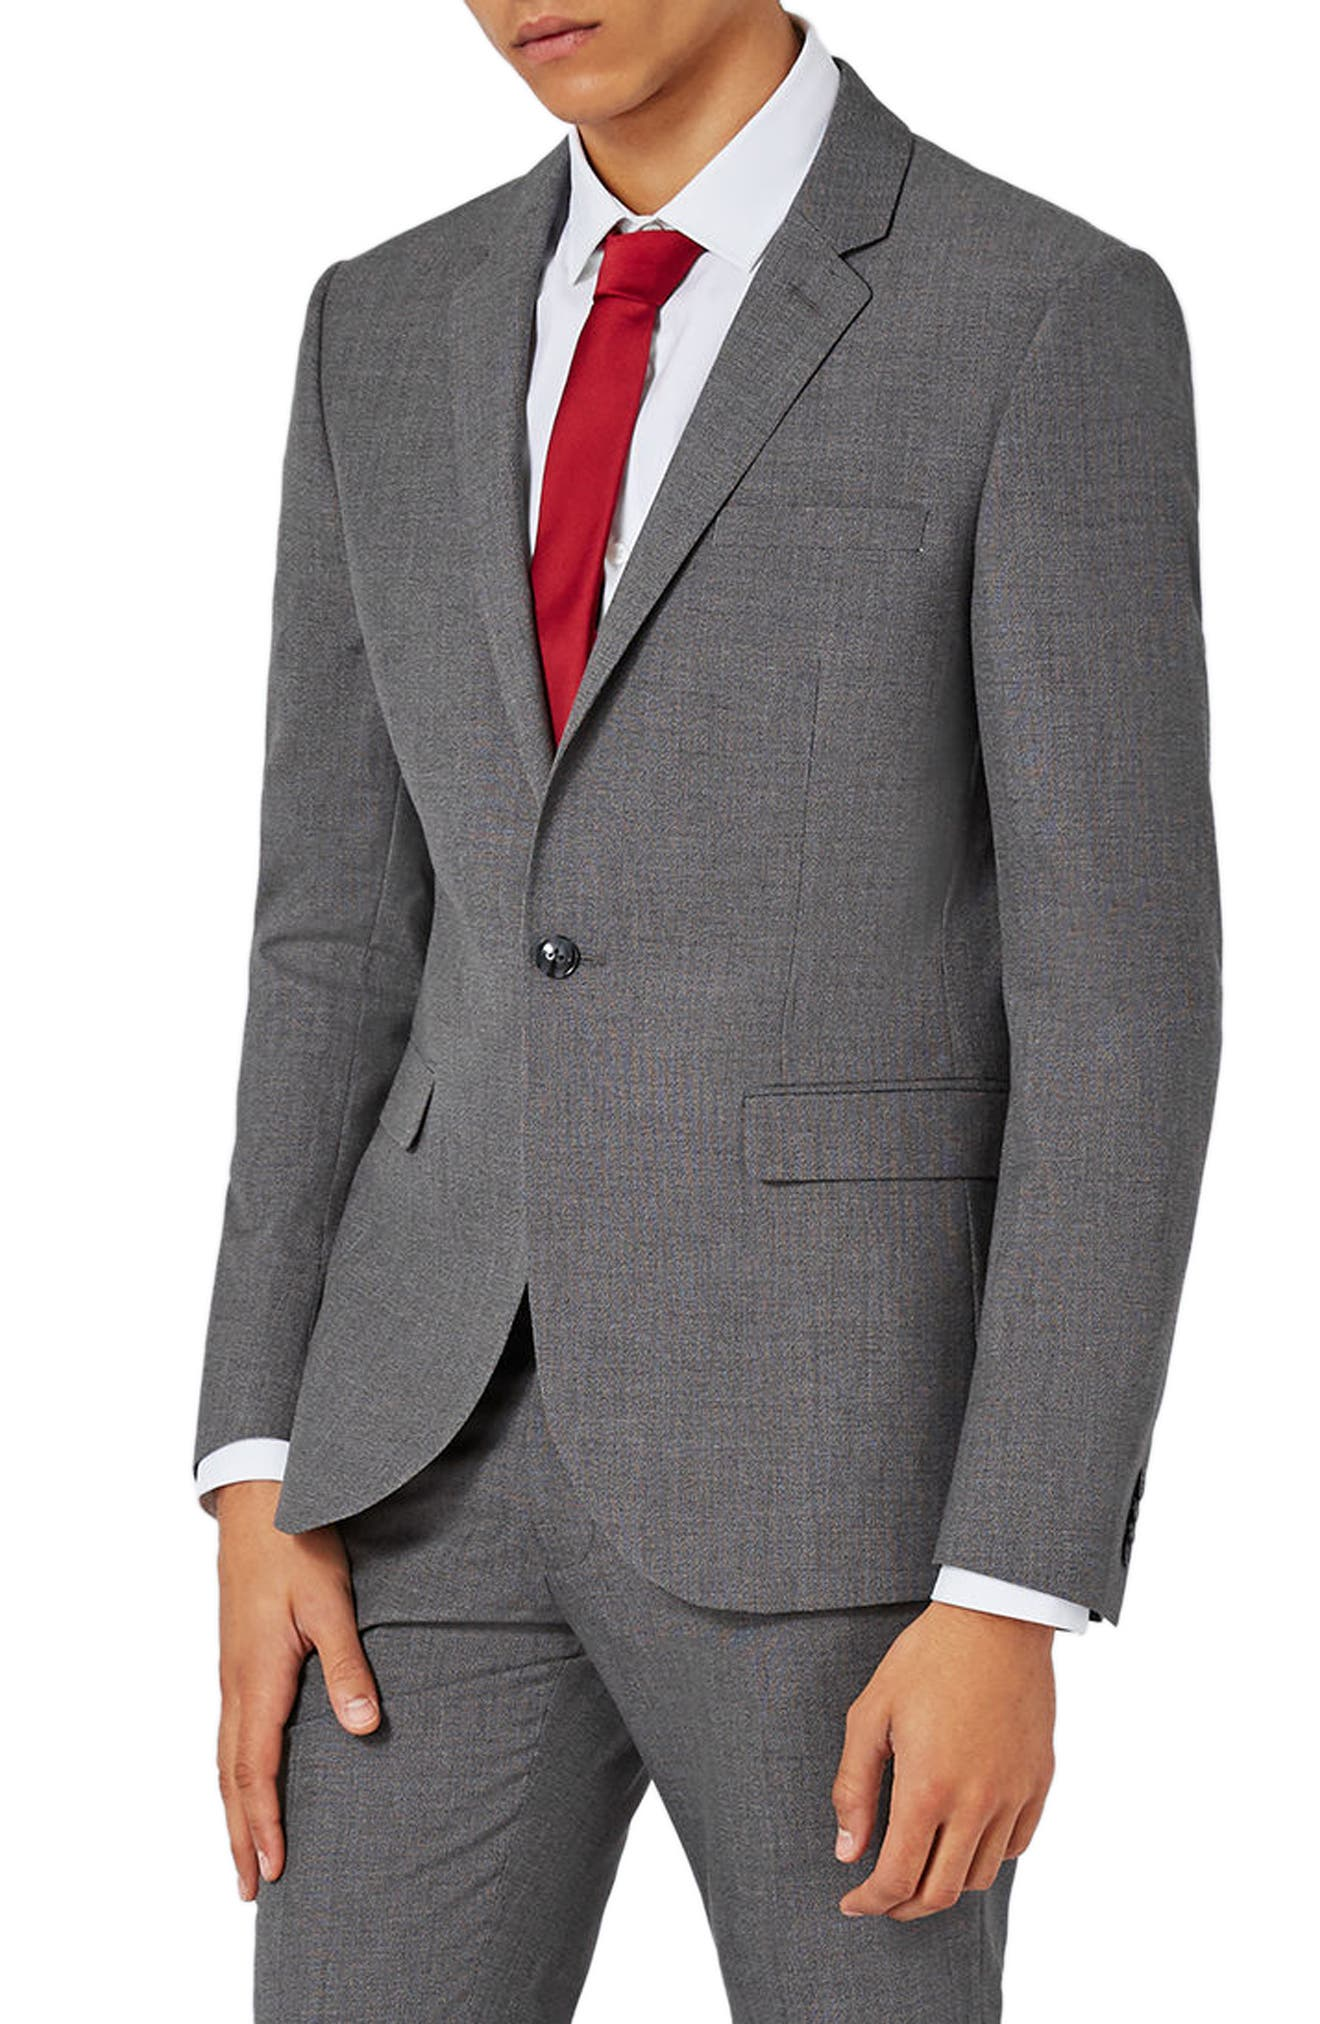 TOPMAN Textured Skinny Fit Suit Jacket